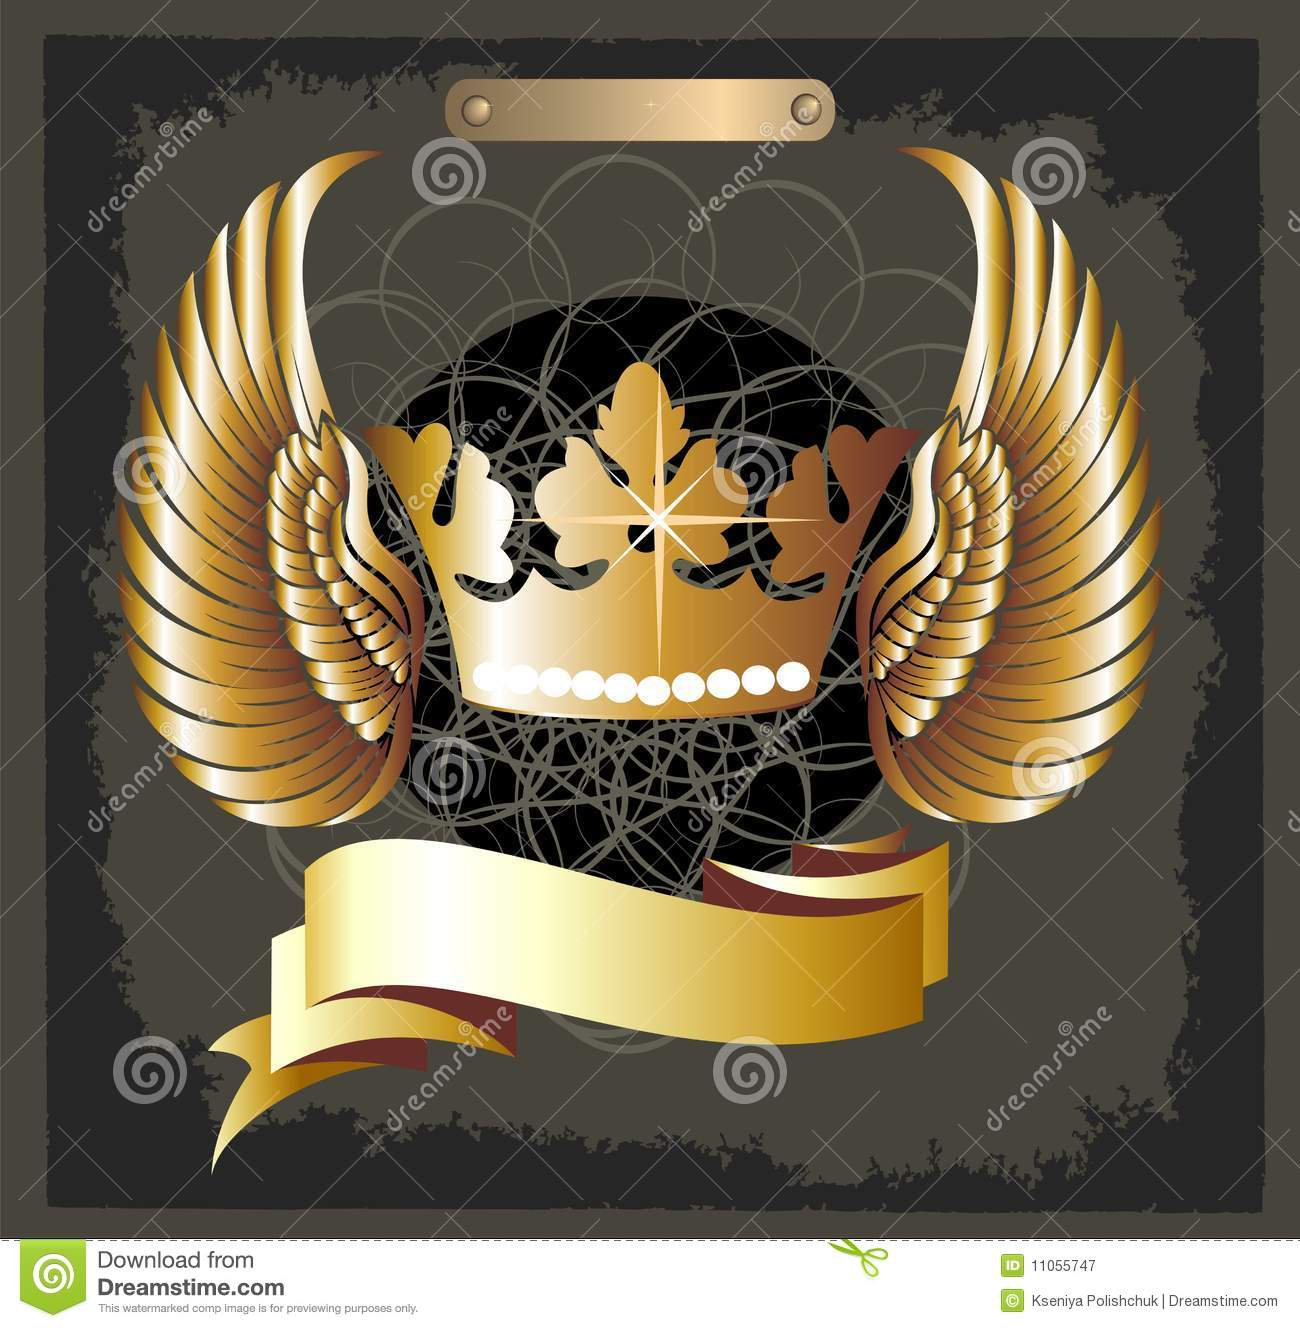 Grunge Royal crown vector with wings